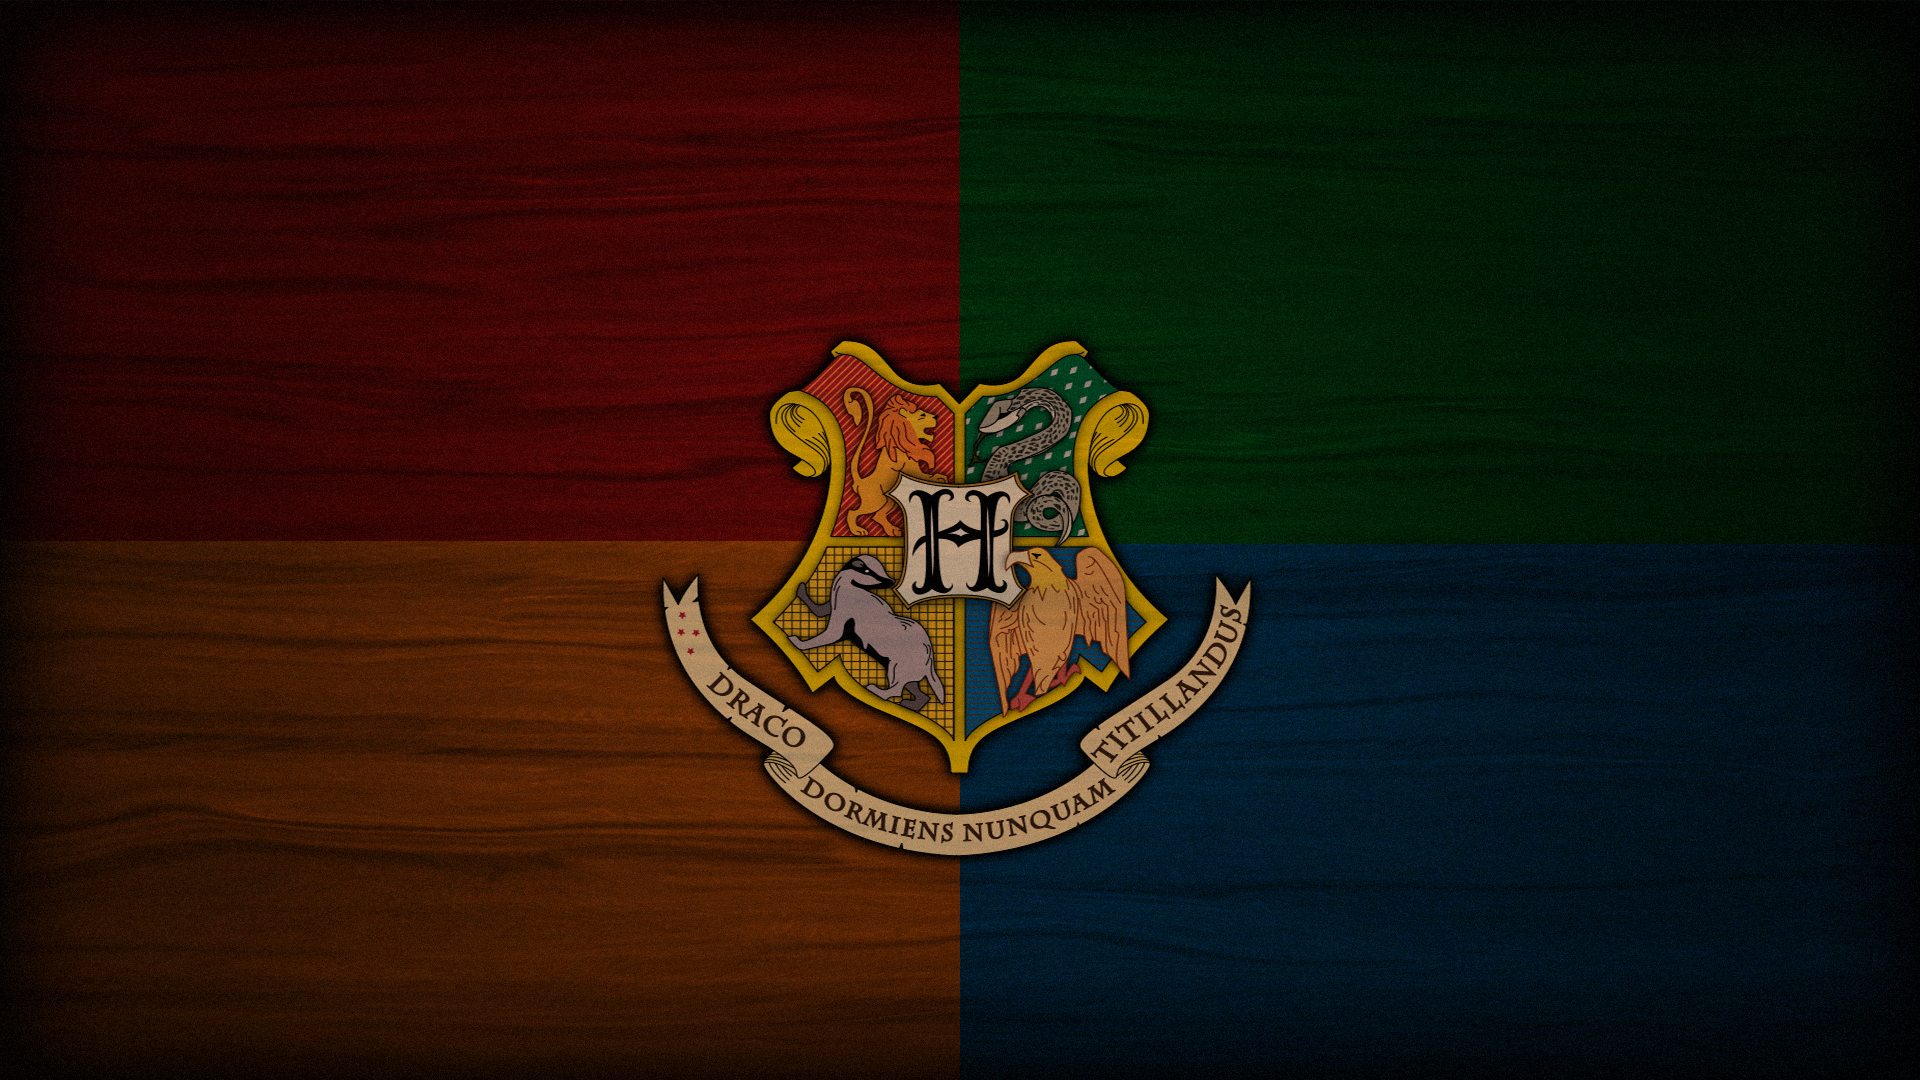 47 Hogwarts Desktop Wallpaper On Wallpapersafari